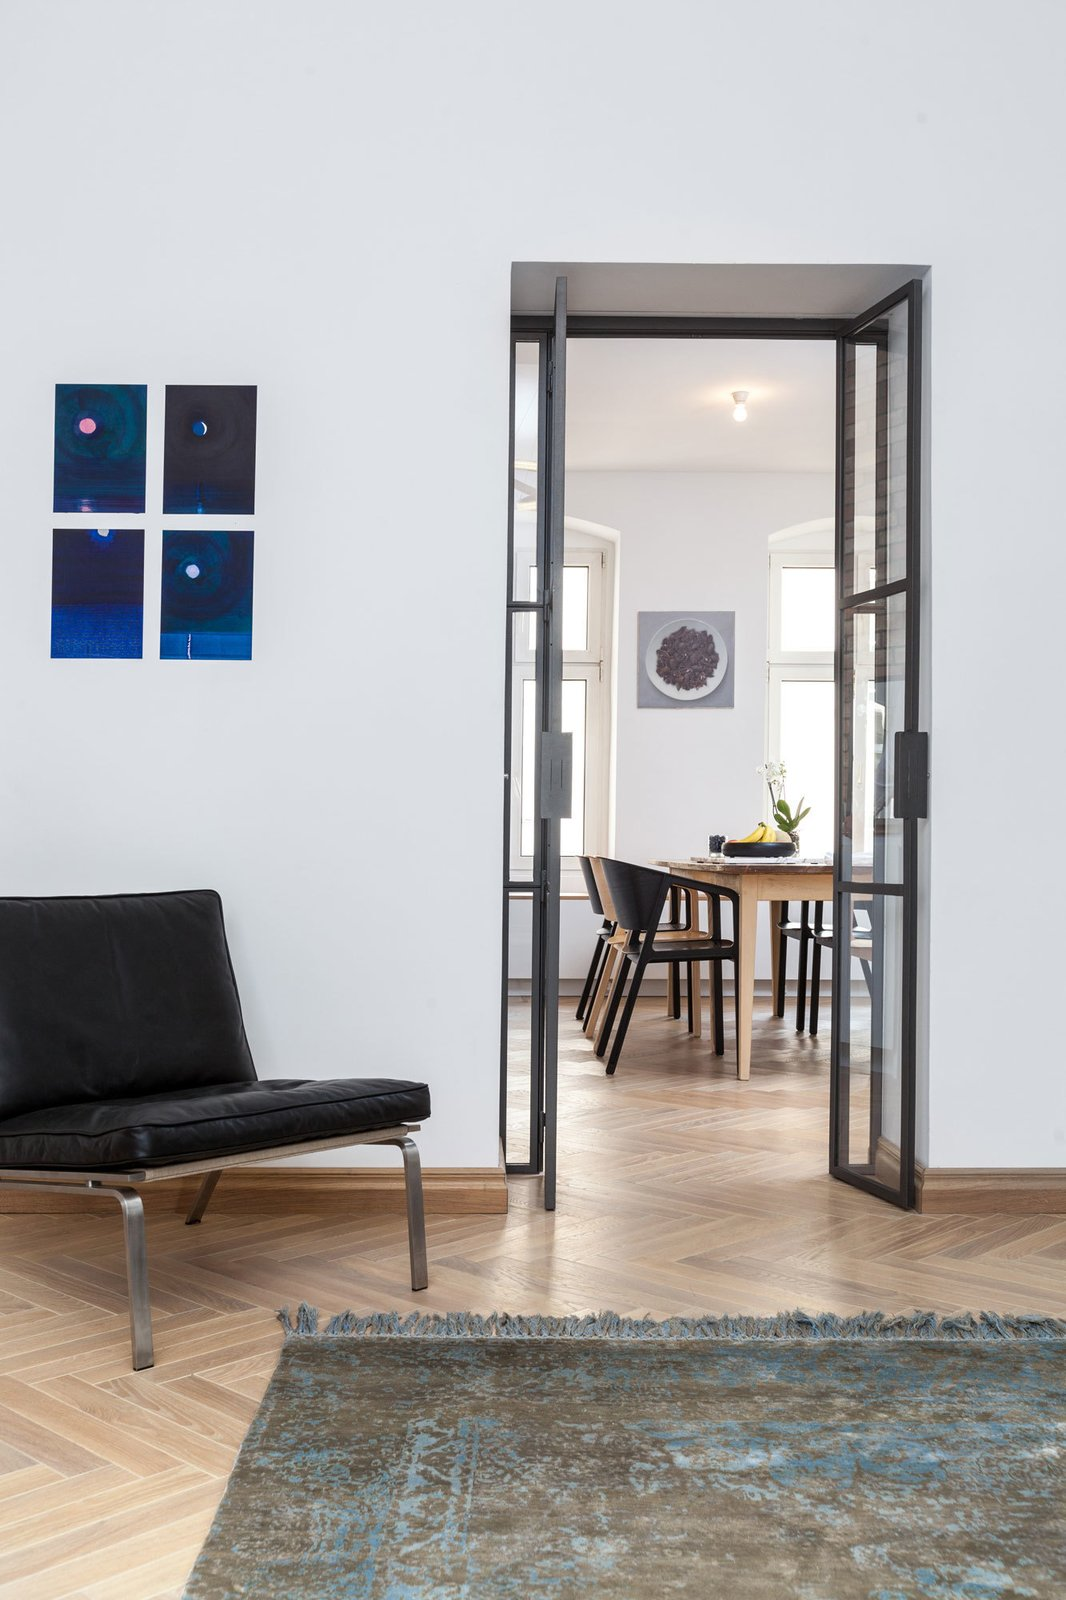 A new custom glass door separates the living room from the kitchen and dining area while allowing natural light to filter through.  Photo 4 of 7 in A Hidden Passageway Makes Each Room in This Berlin Flat a Private Destination